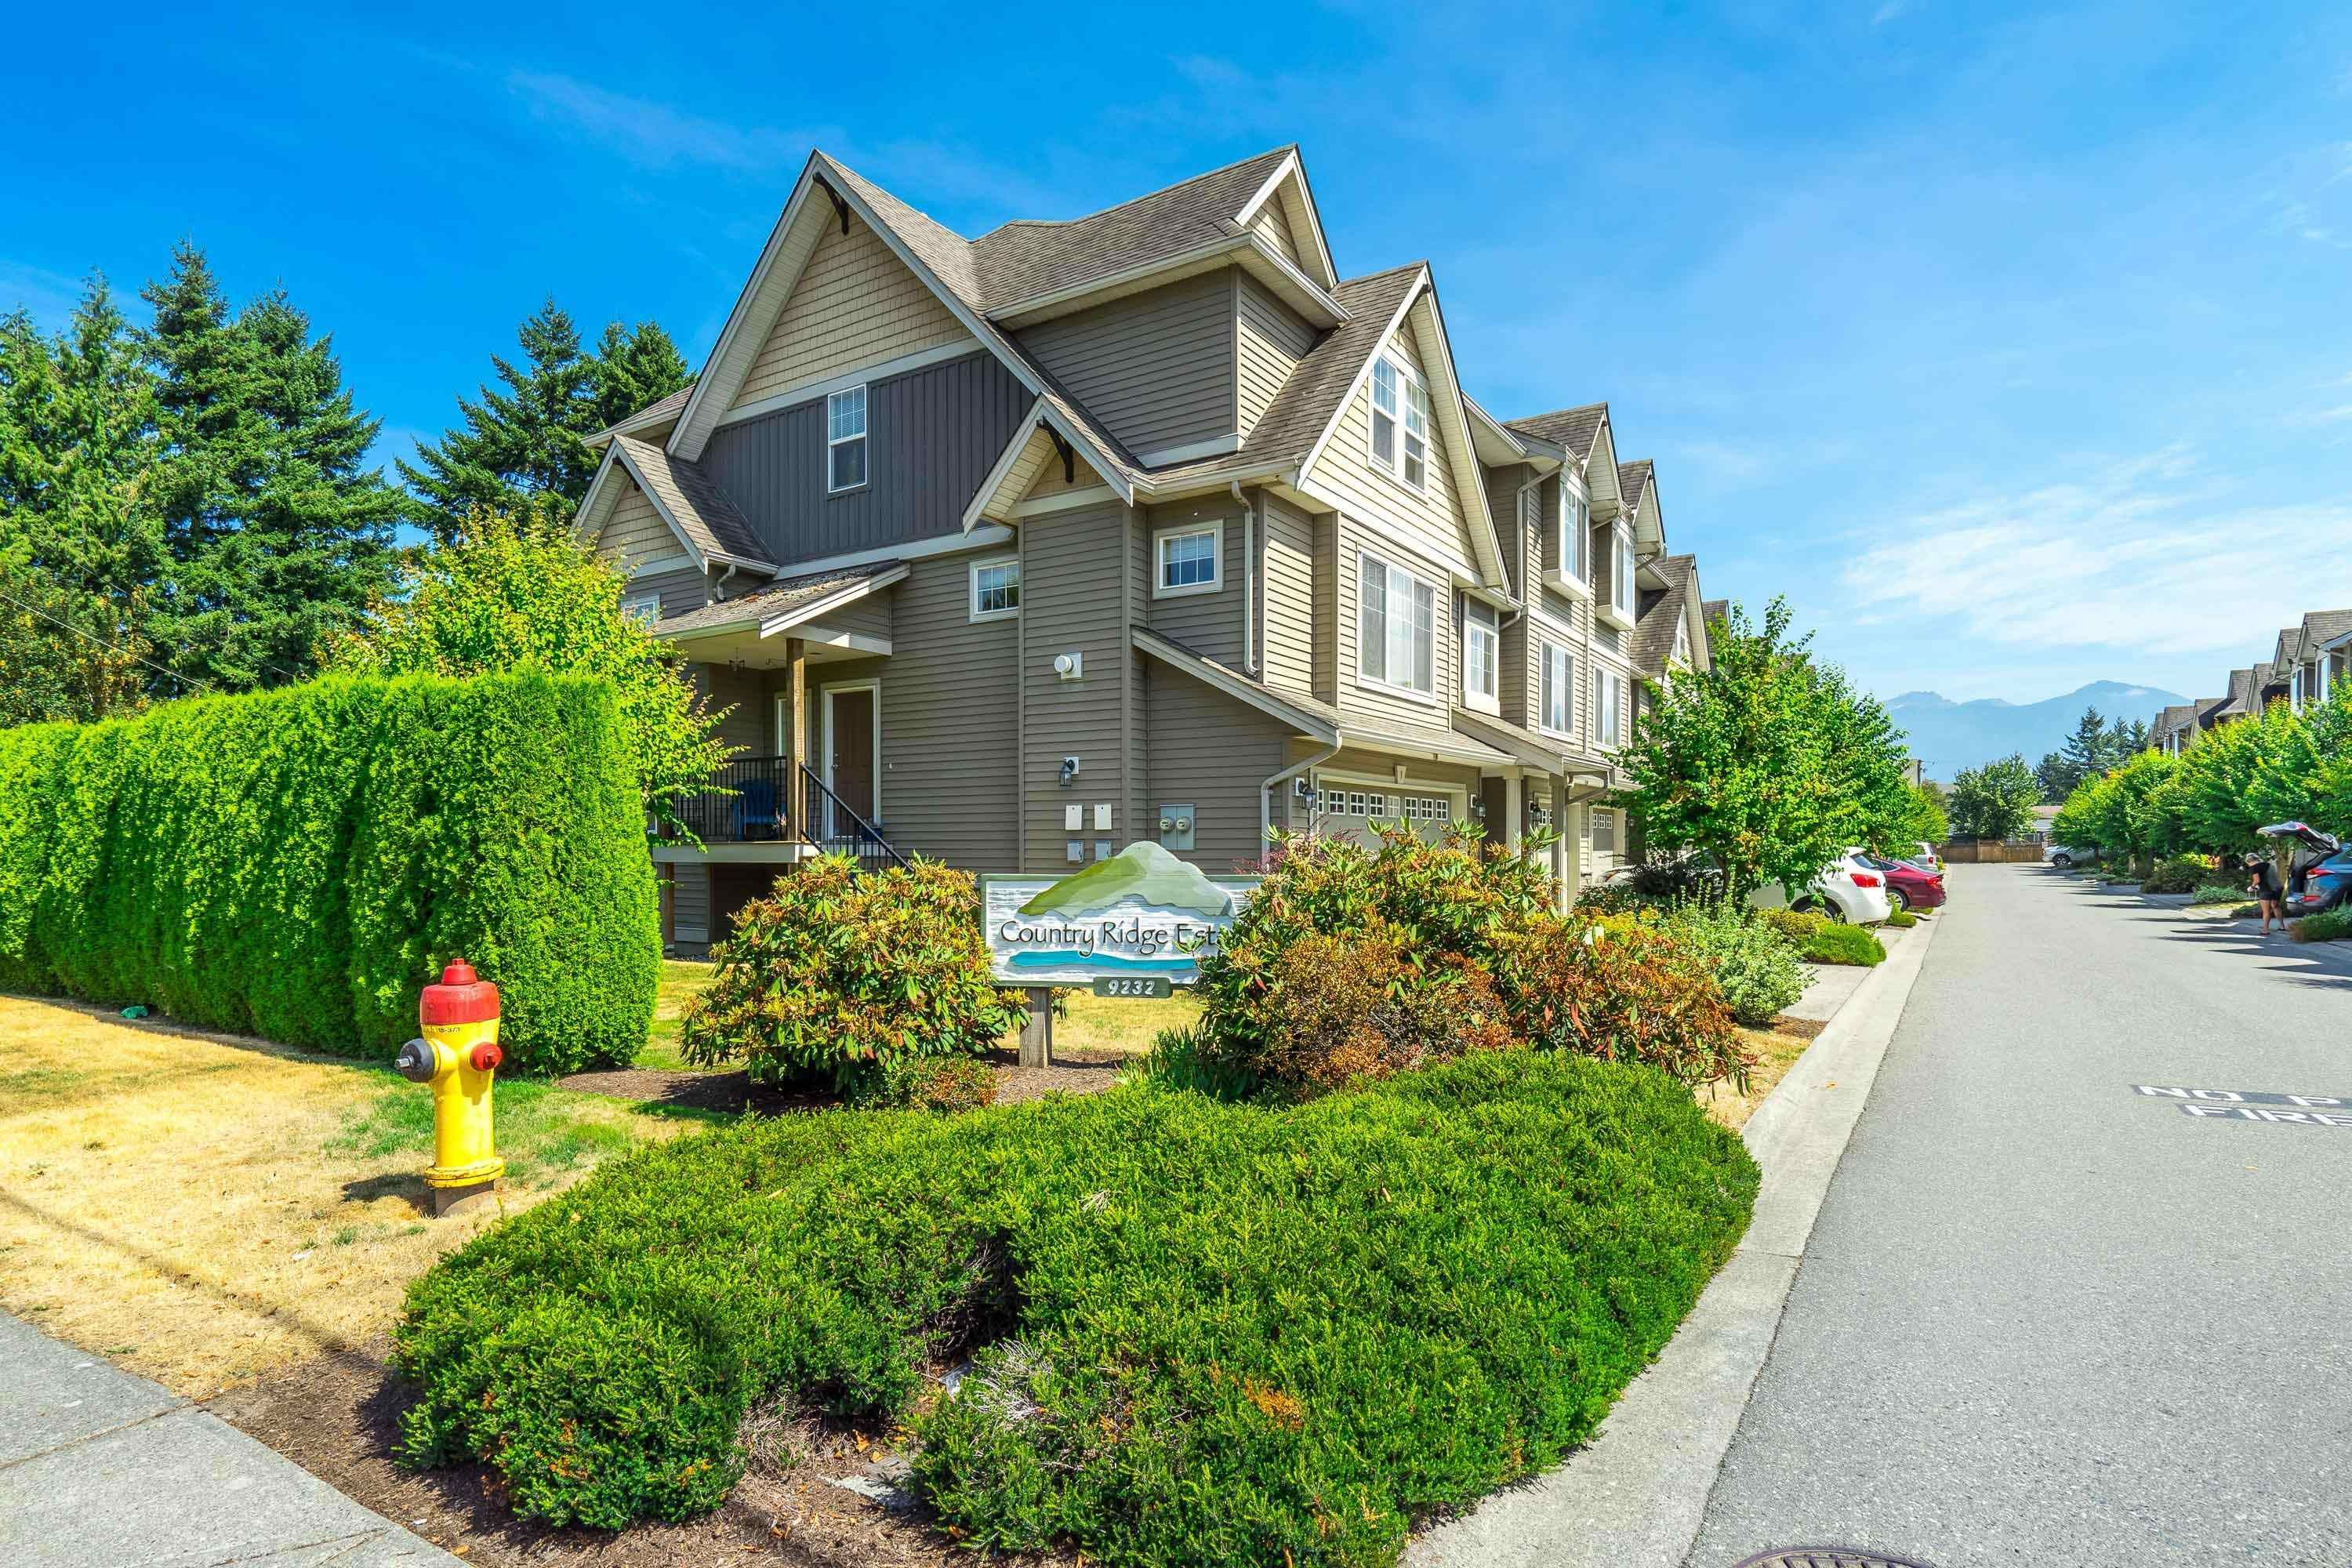 """Main Photo: 14 9232 WOODBINE Street in Chilliwack: Chilliwack E Young-Yale Townhouse for sale in """"Country Ridge Estate"""" : MLS®# R2608989"""